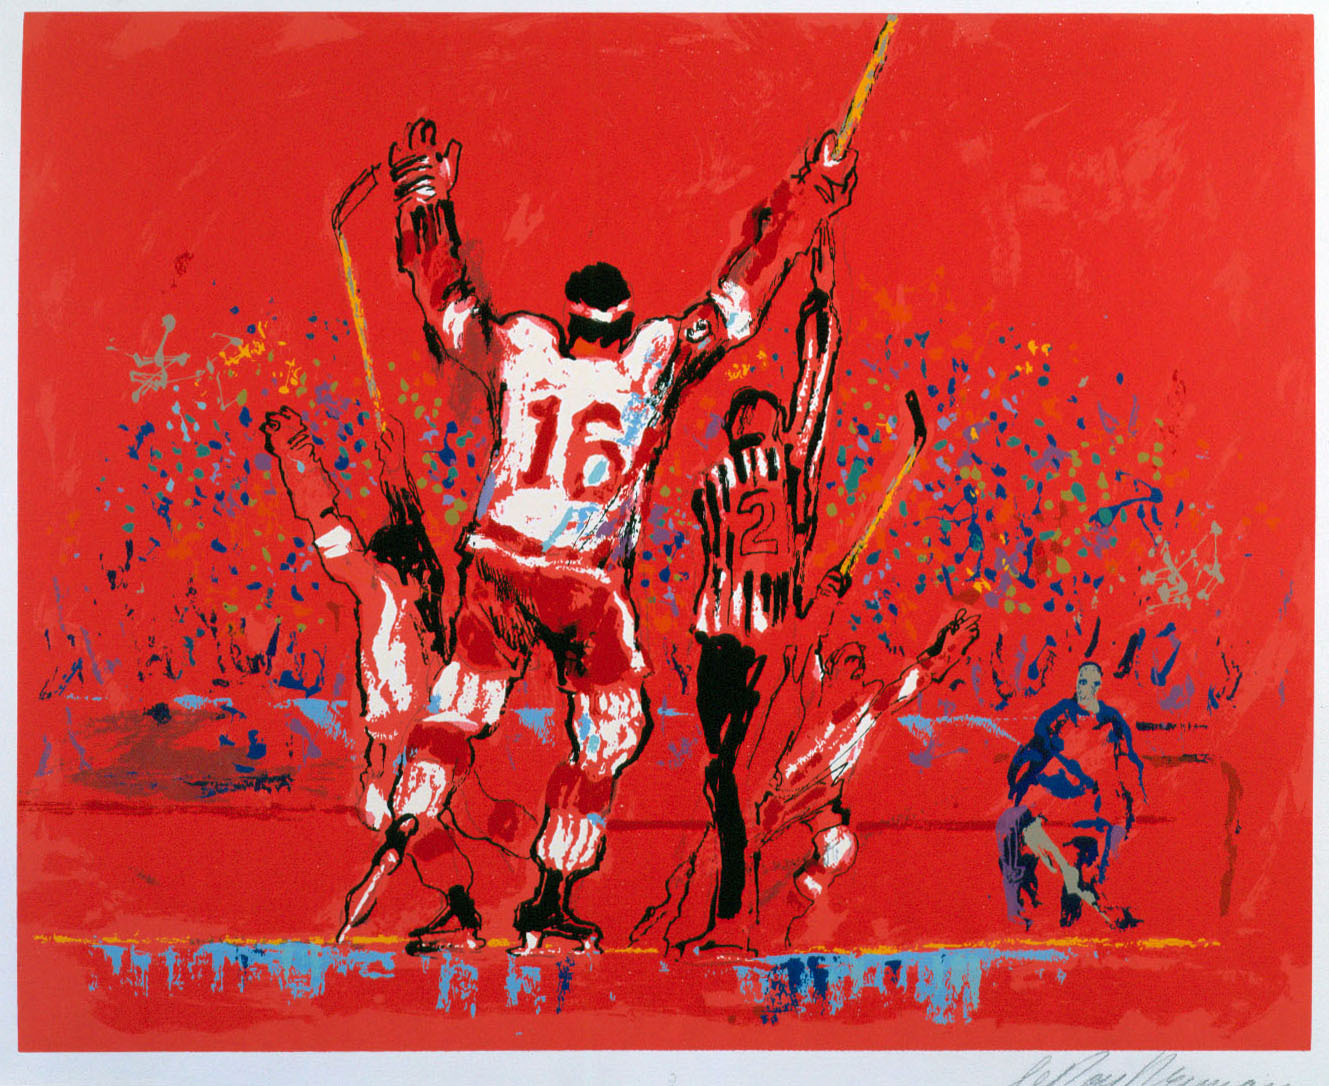 Red Goal, 1973